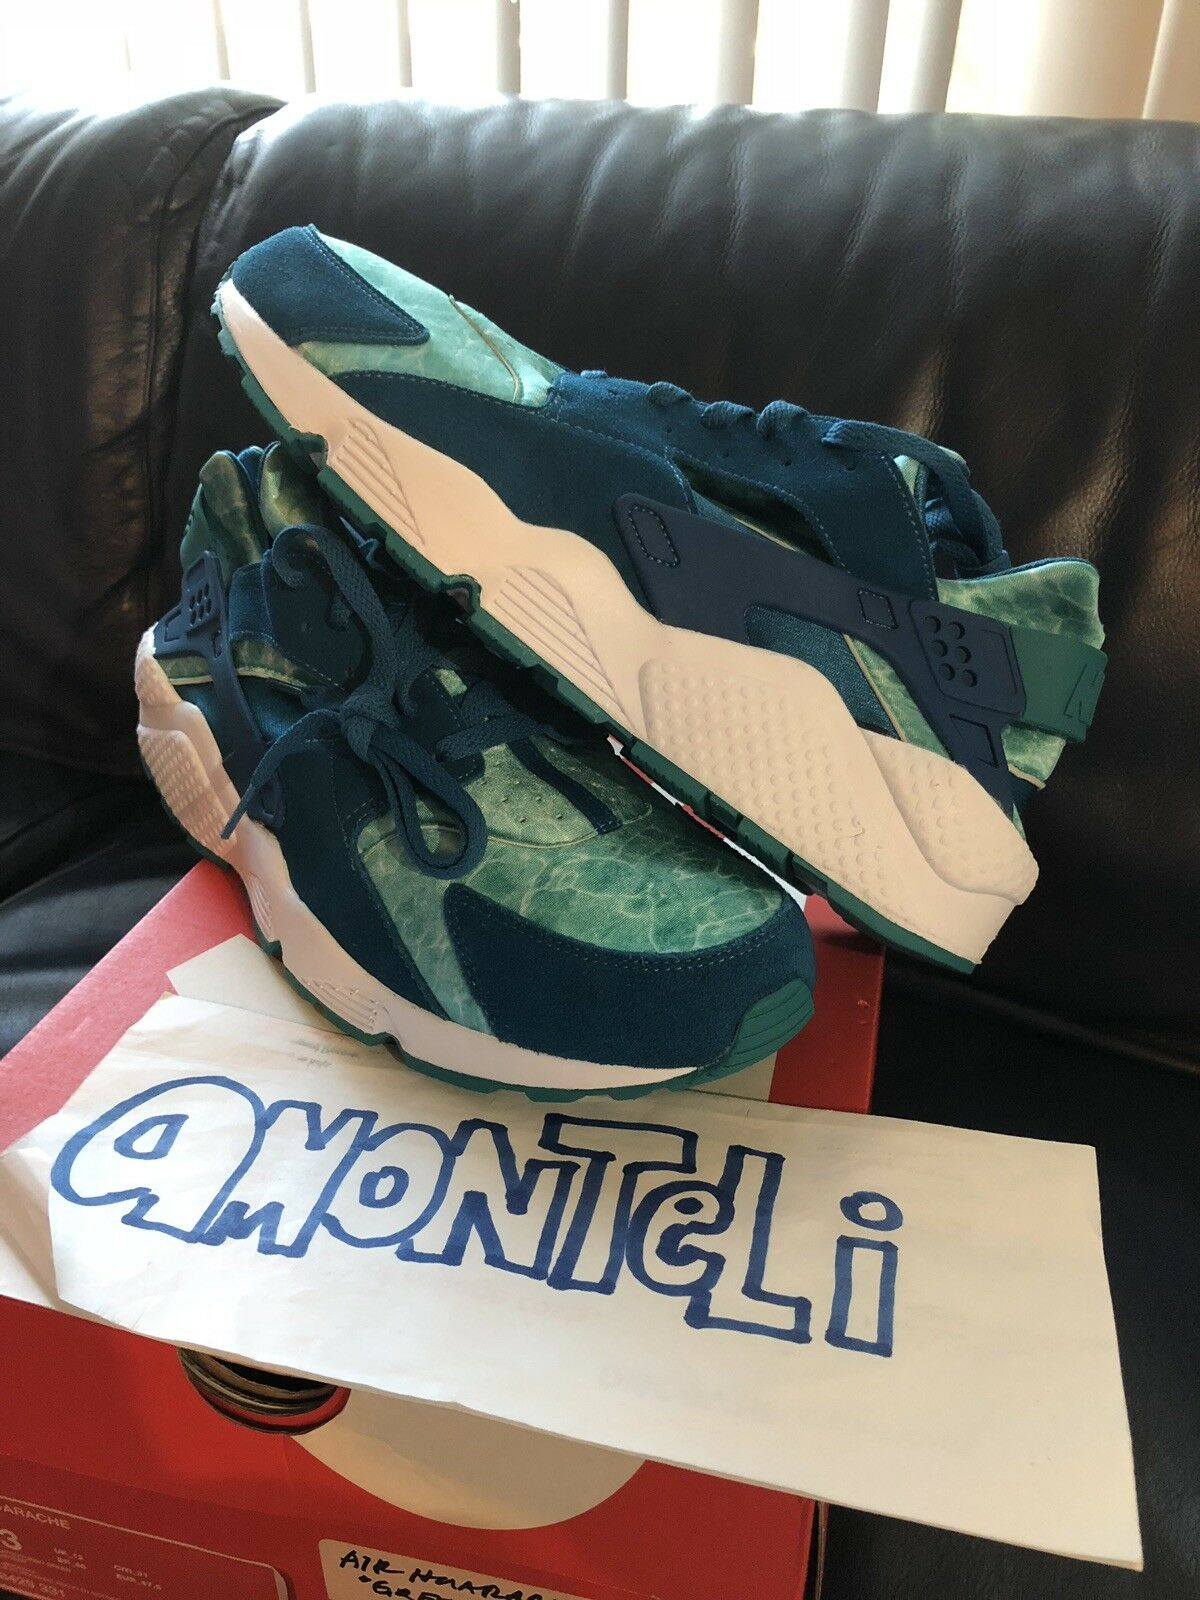 BRAND NEW NIKE AIR HUARACHE GREEN ABYSS - SIZE 13 (FITS A SIZE 12)